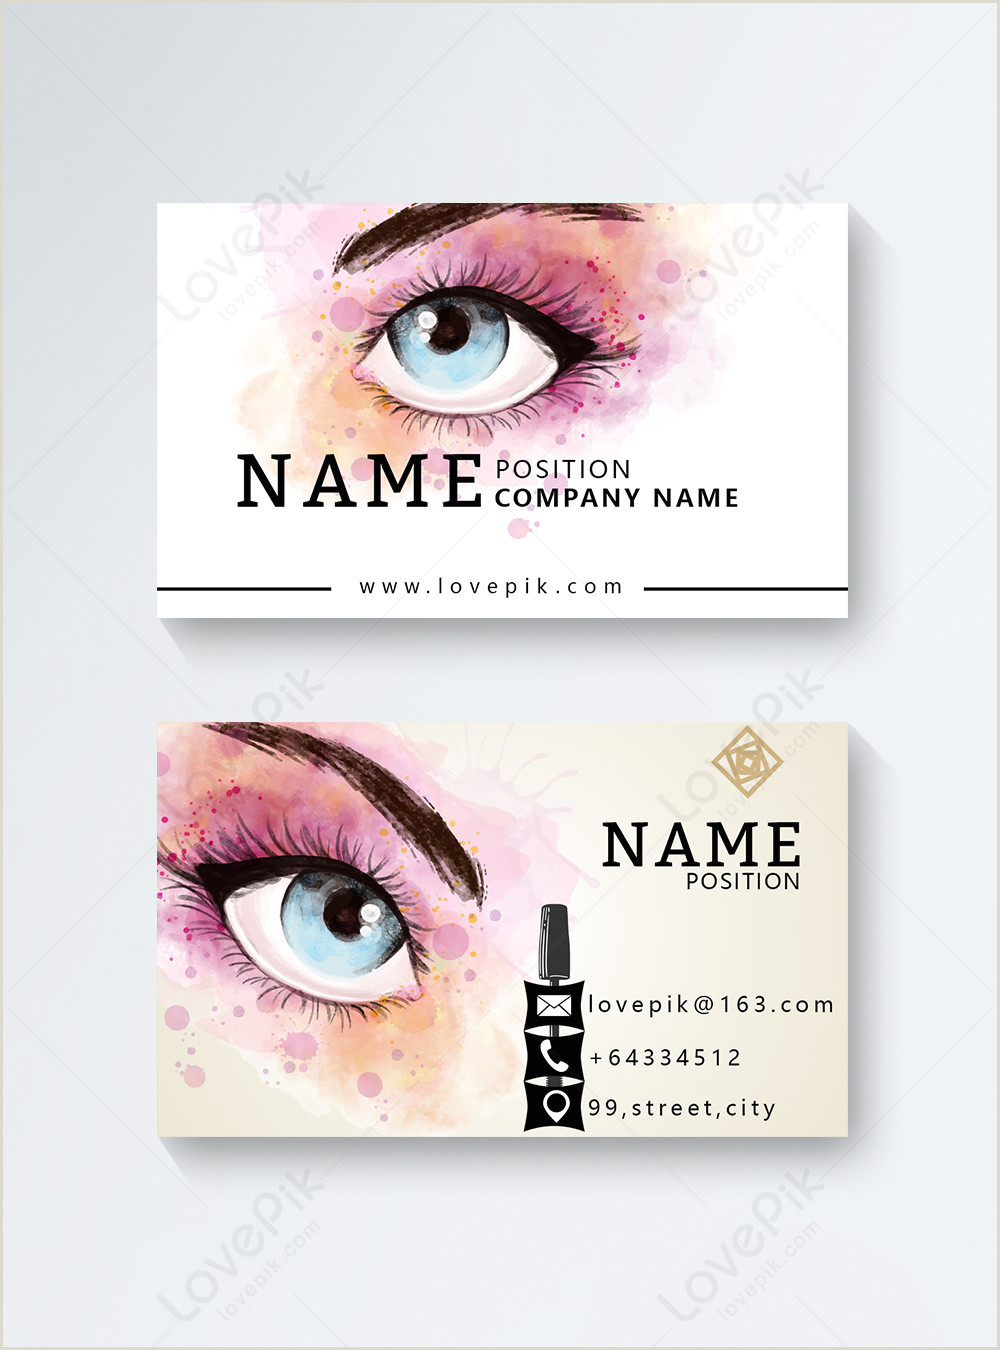 Sample Artist Business Cards Makeup Artist Business Cards Template Image Picture Free